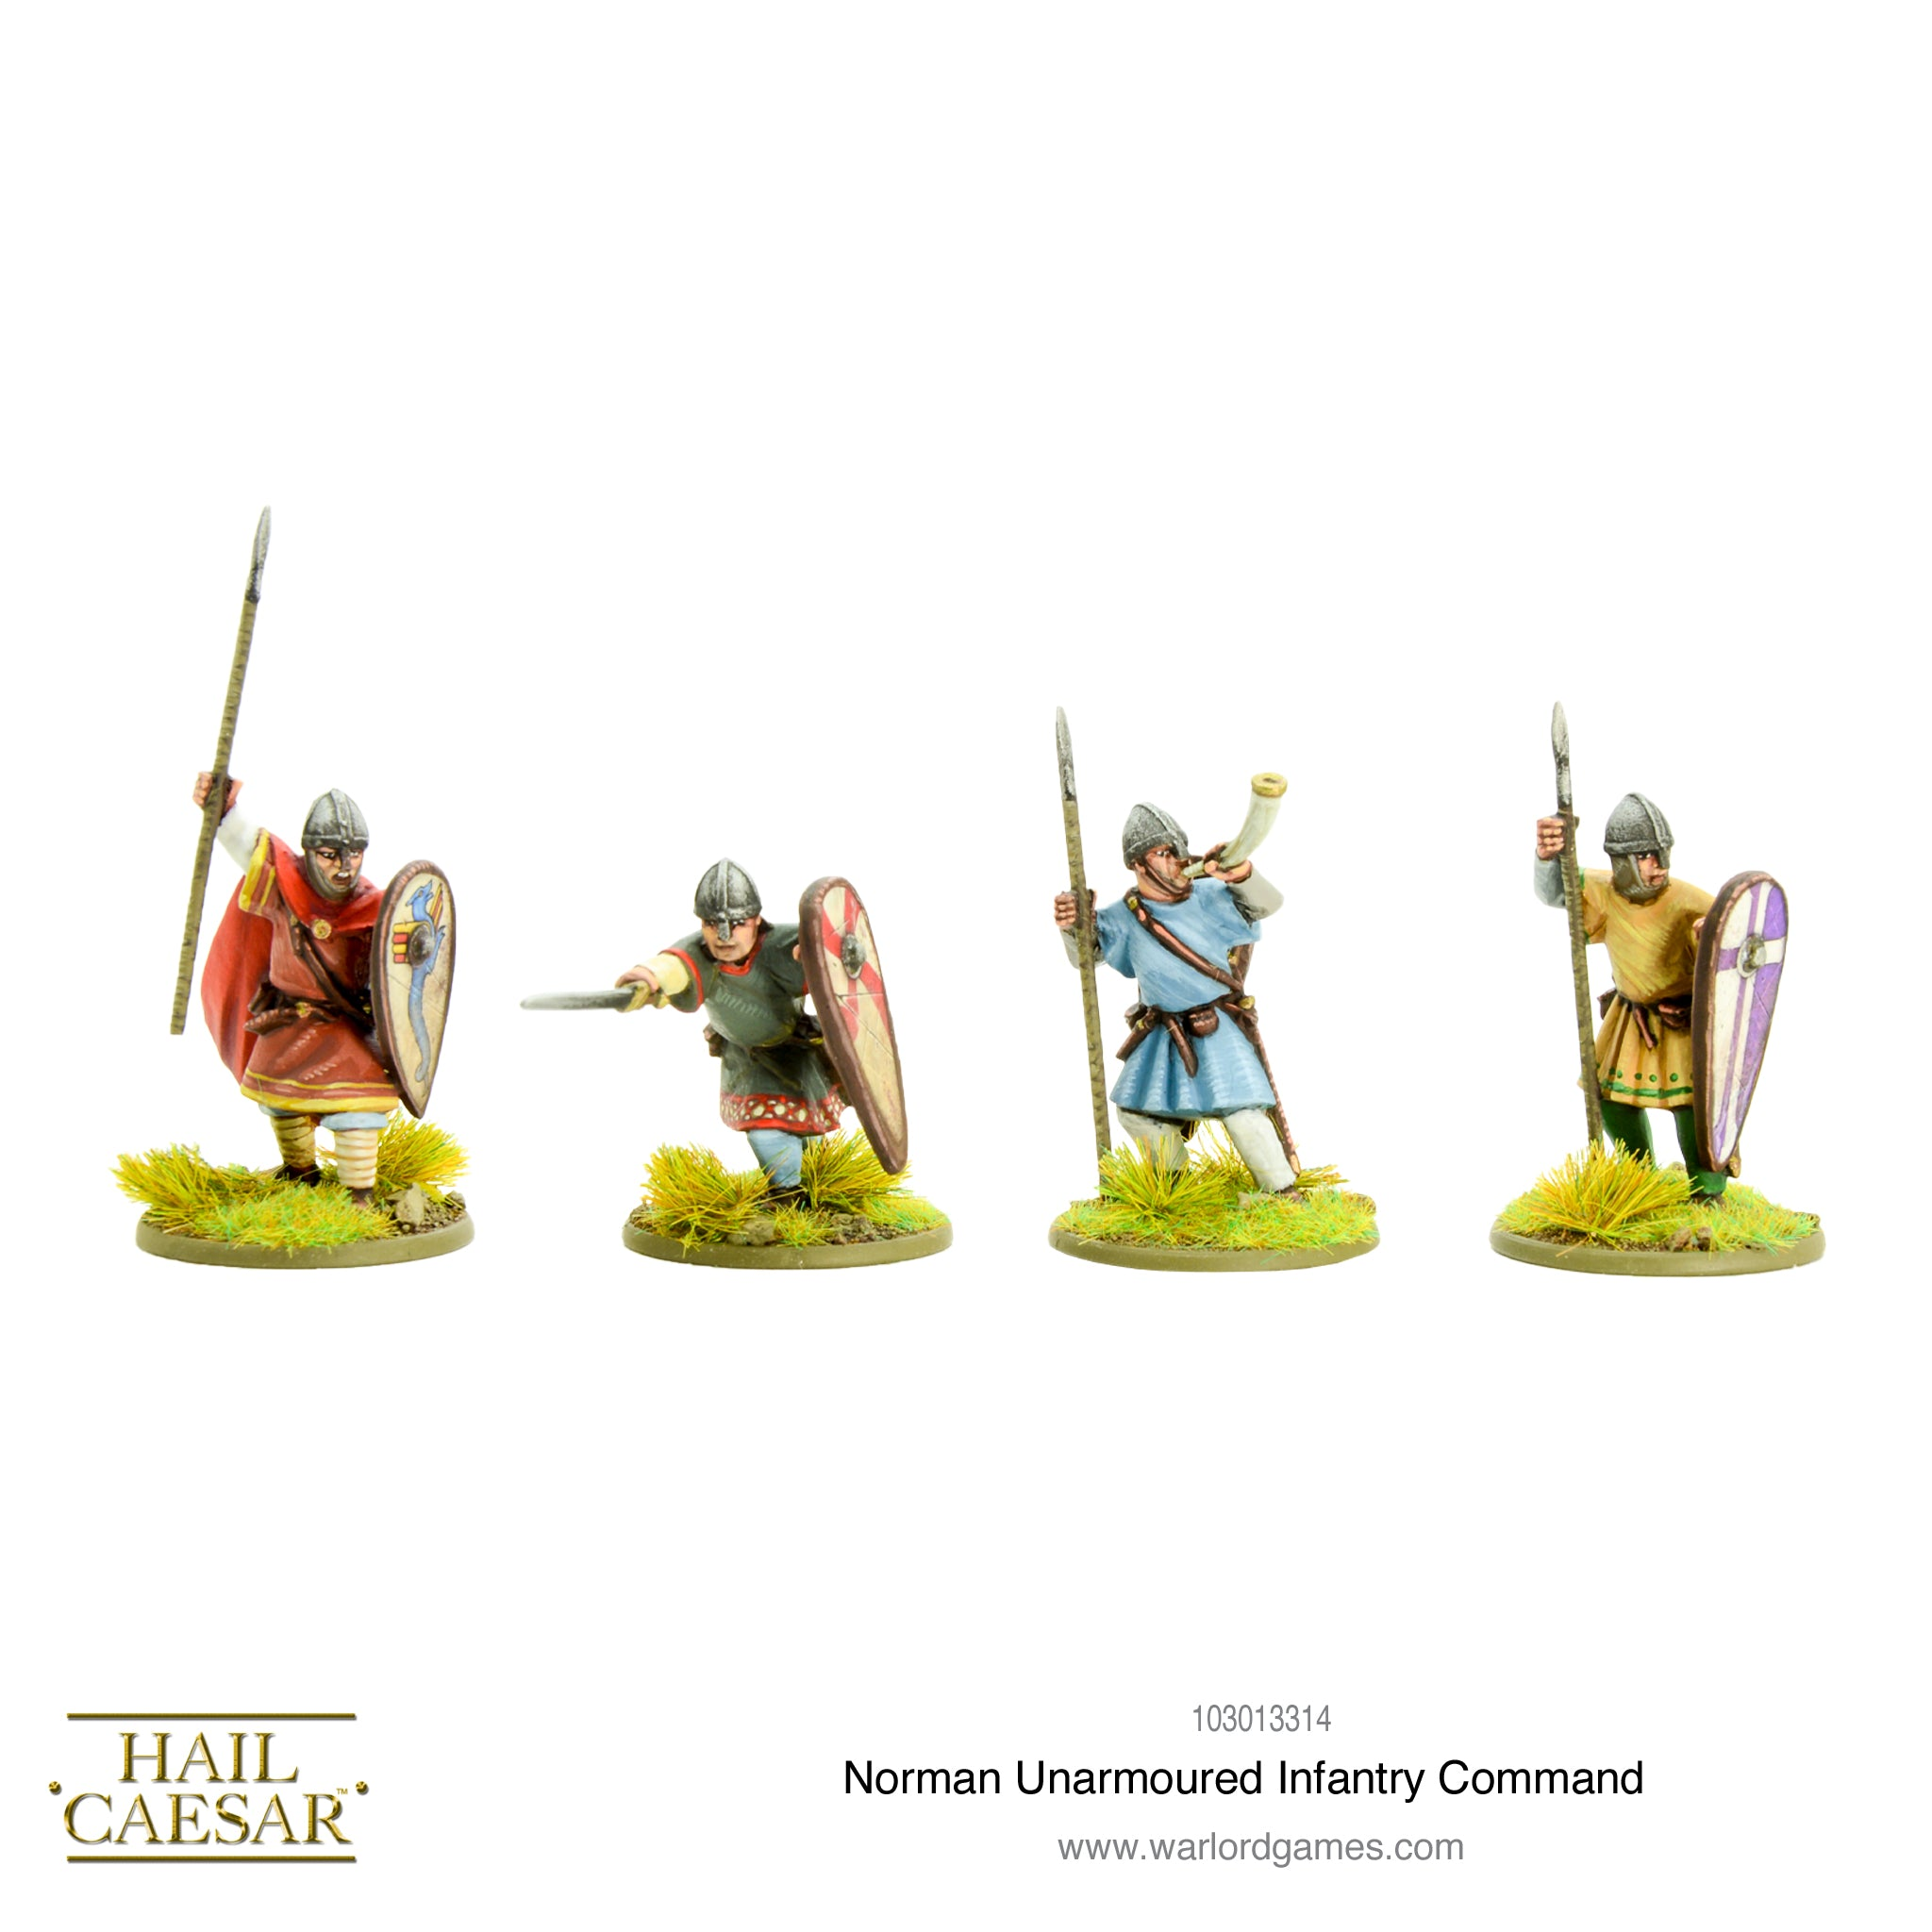 Norman Unarmoured Infantry Command